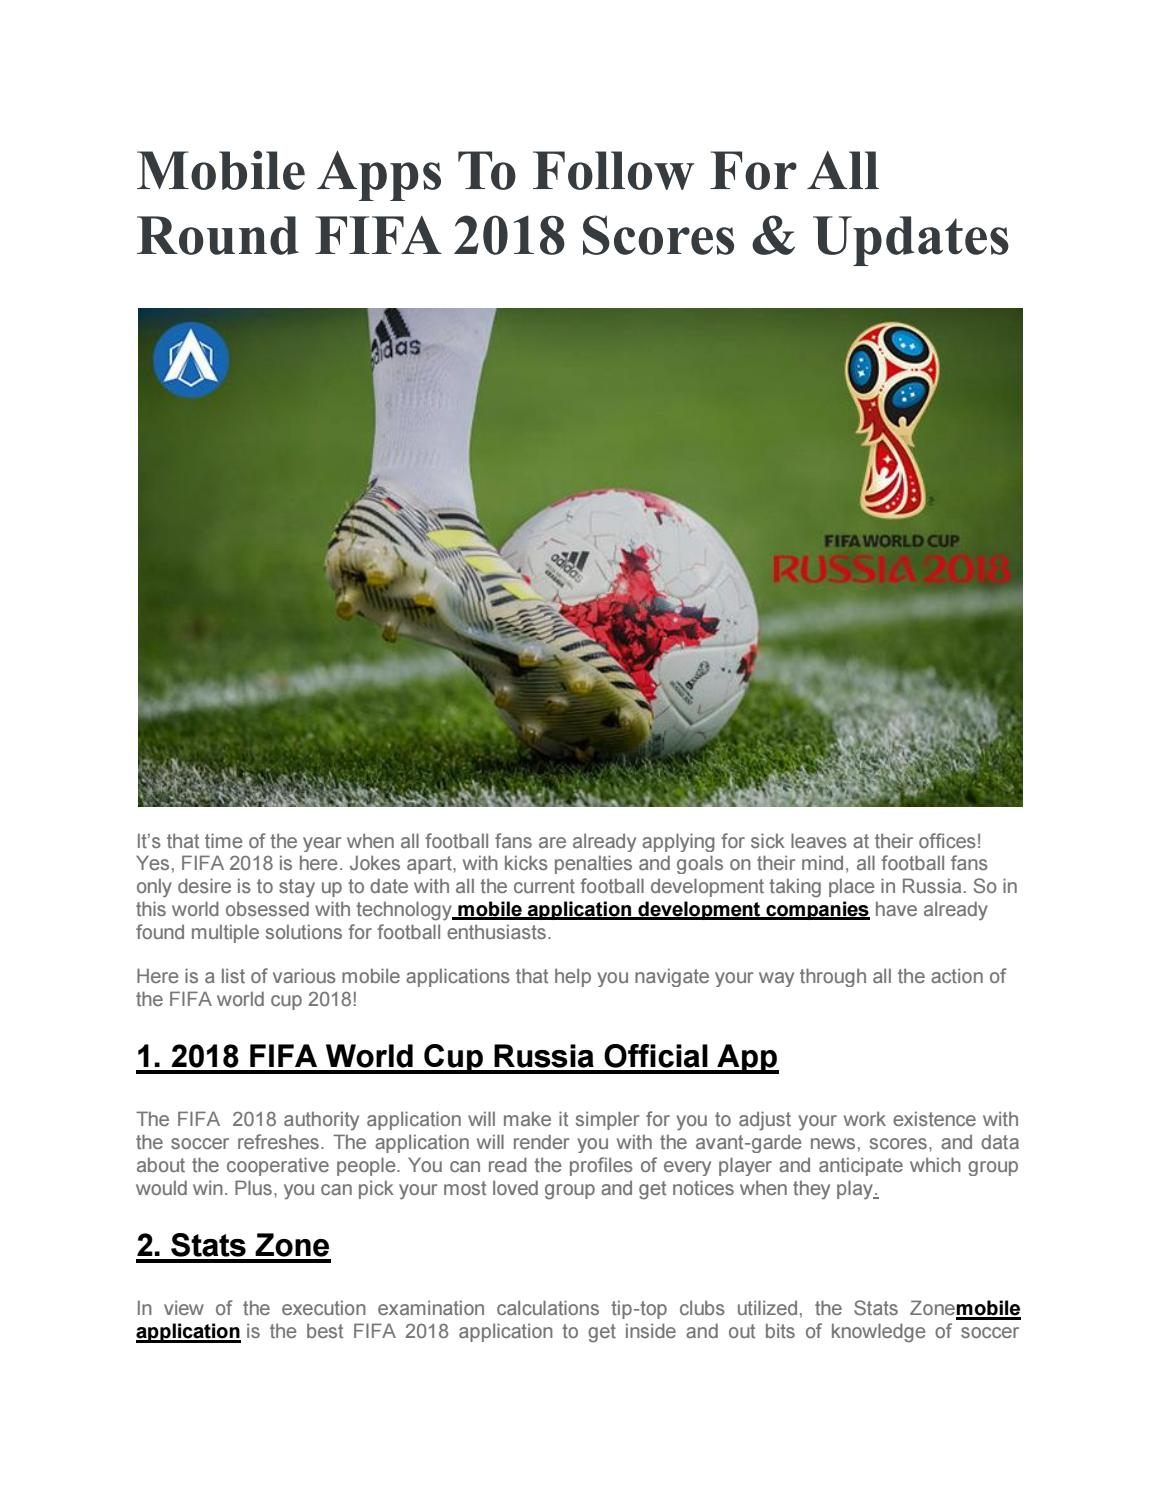 Mobile apps to follow for all round fifa 2018 scores